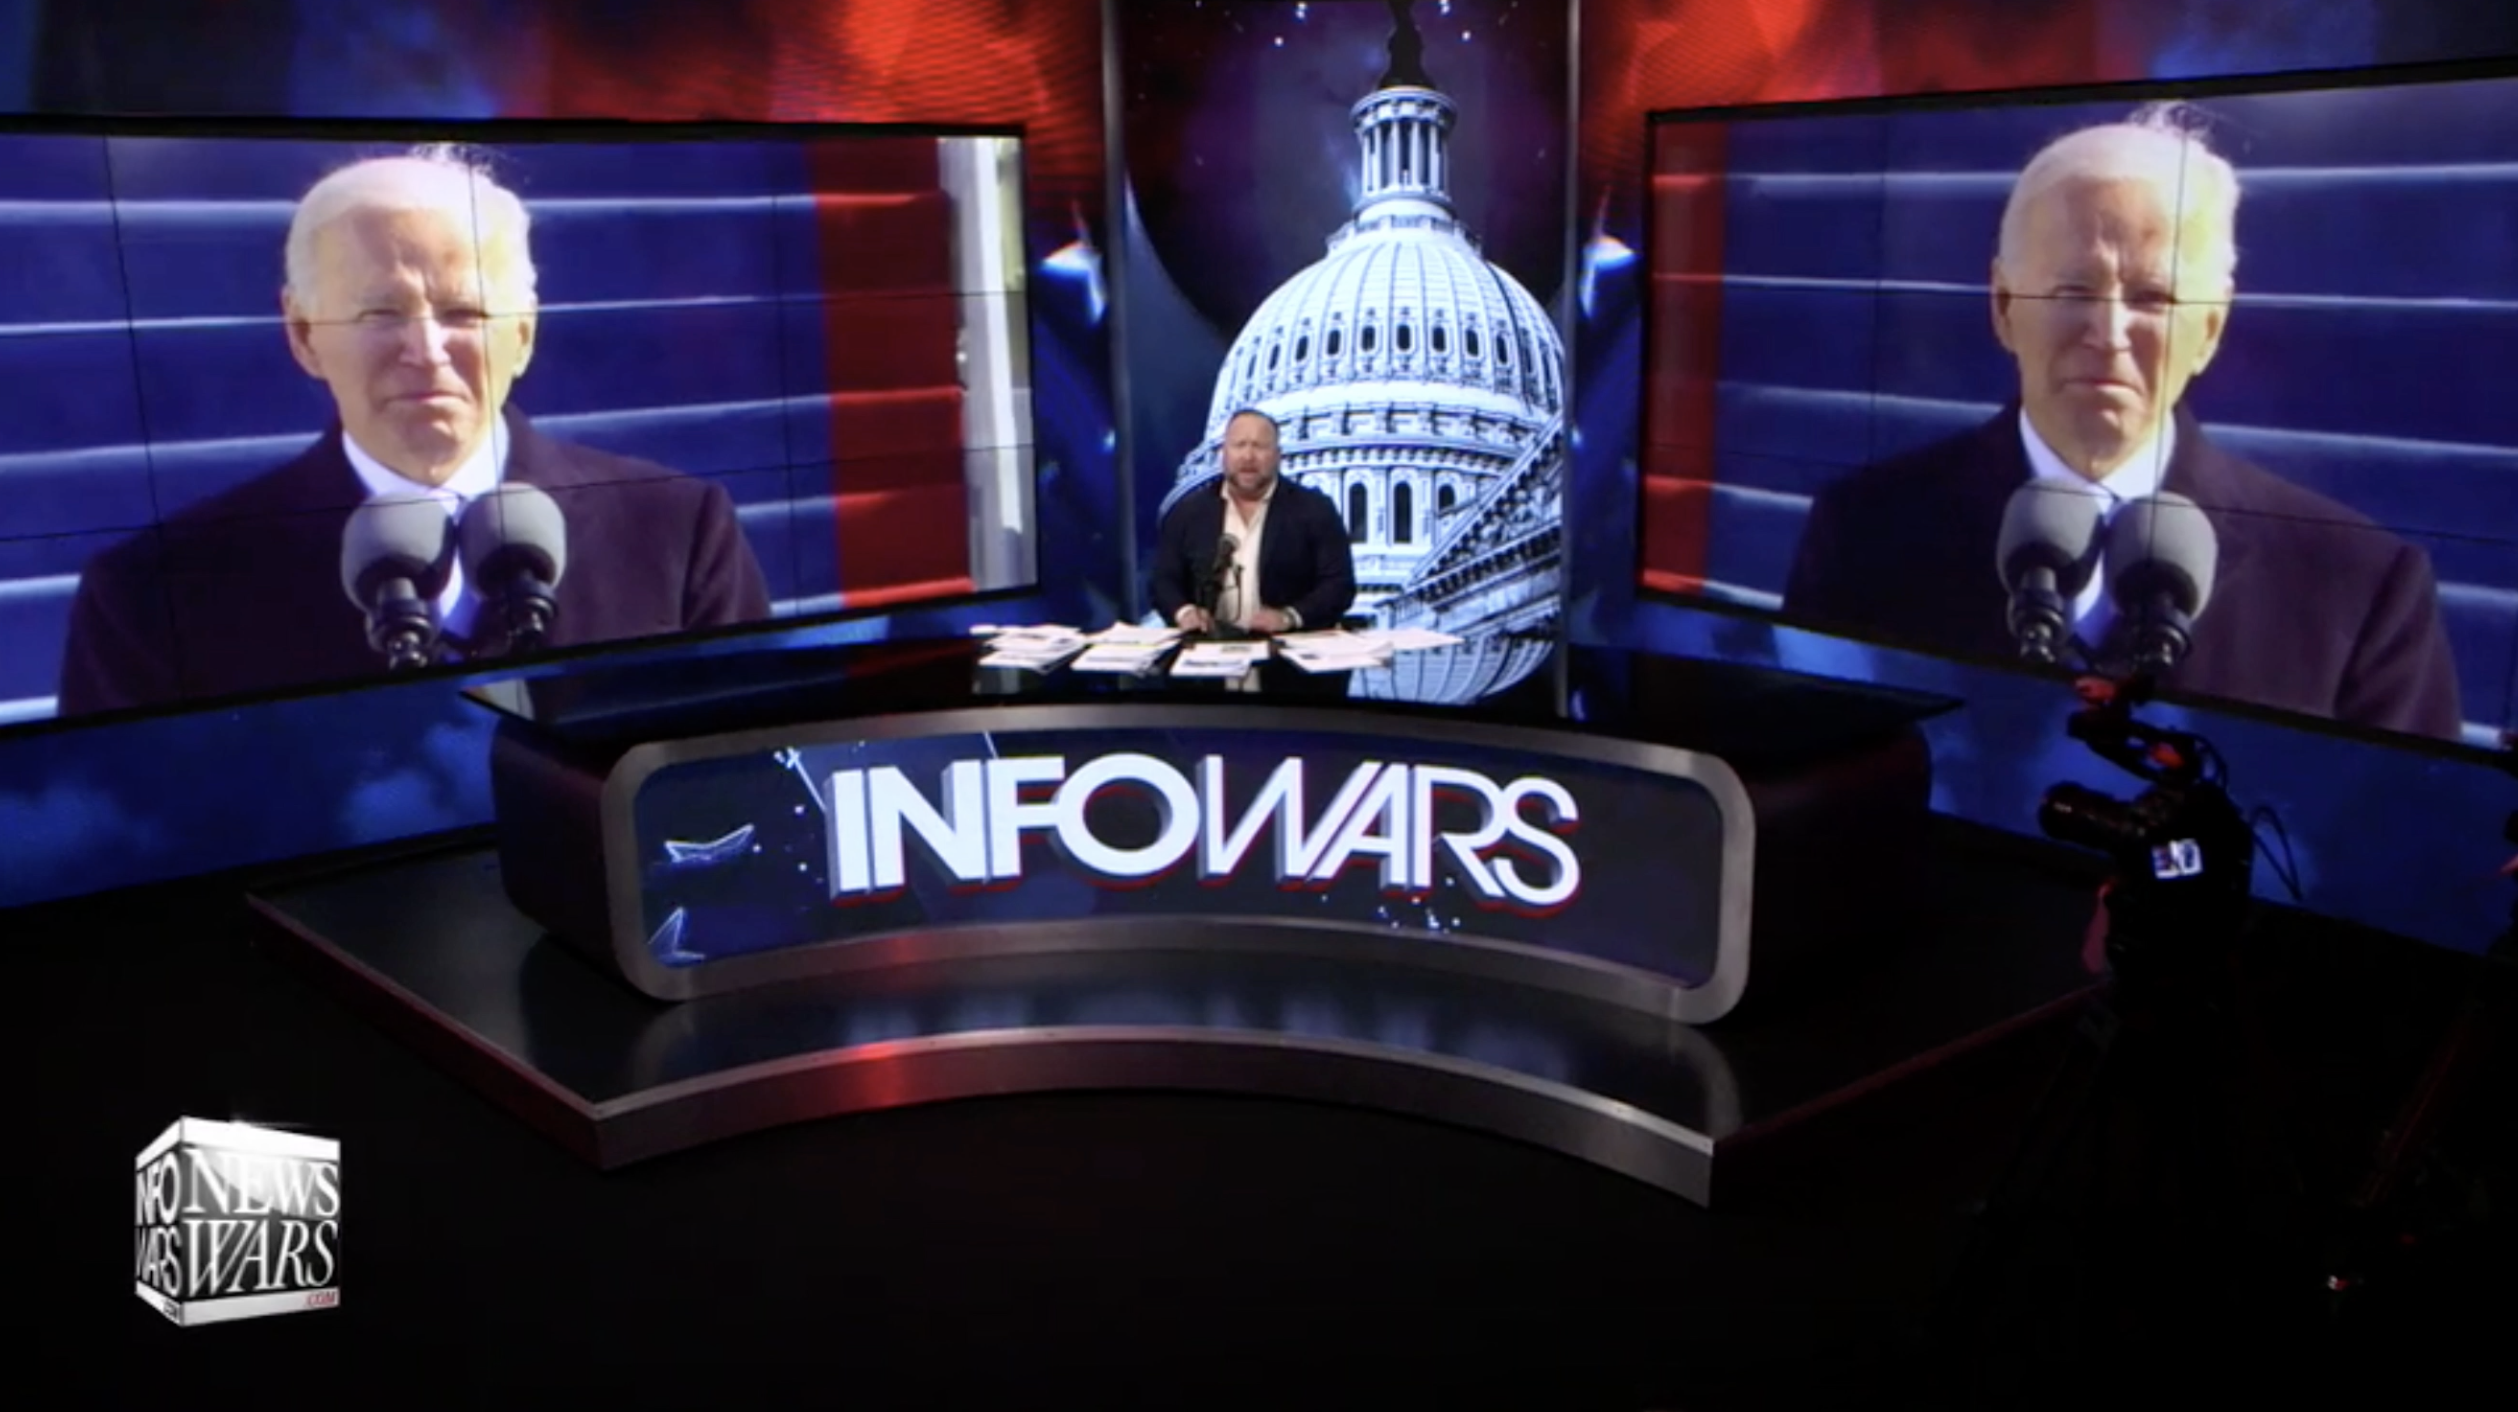 Alex Jones Joe Biden Infowars Studio The Resistance Video EXZM Zack Mount January 20th 2021